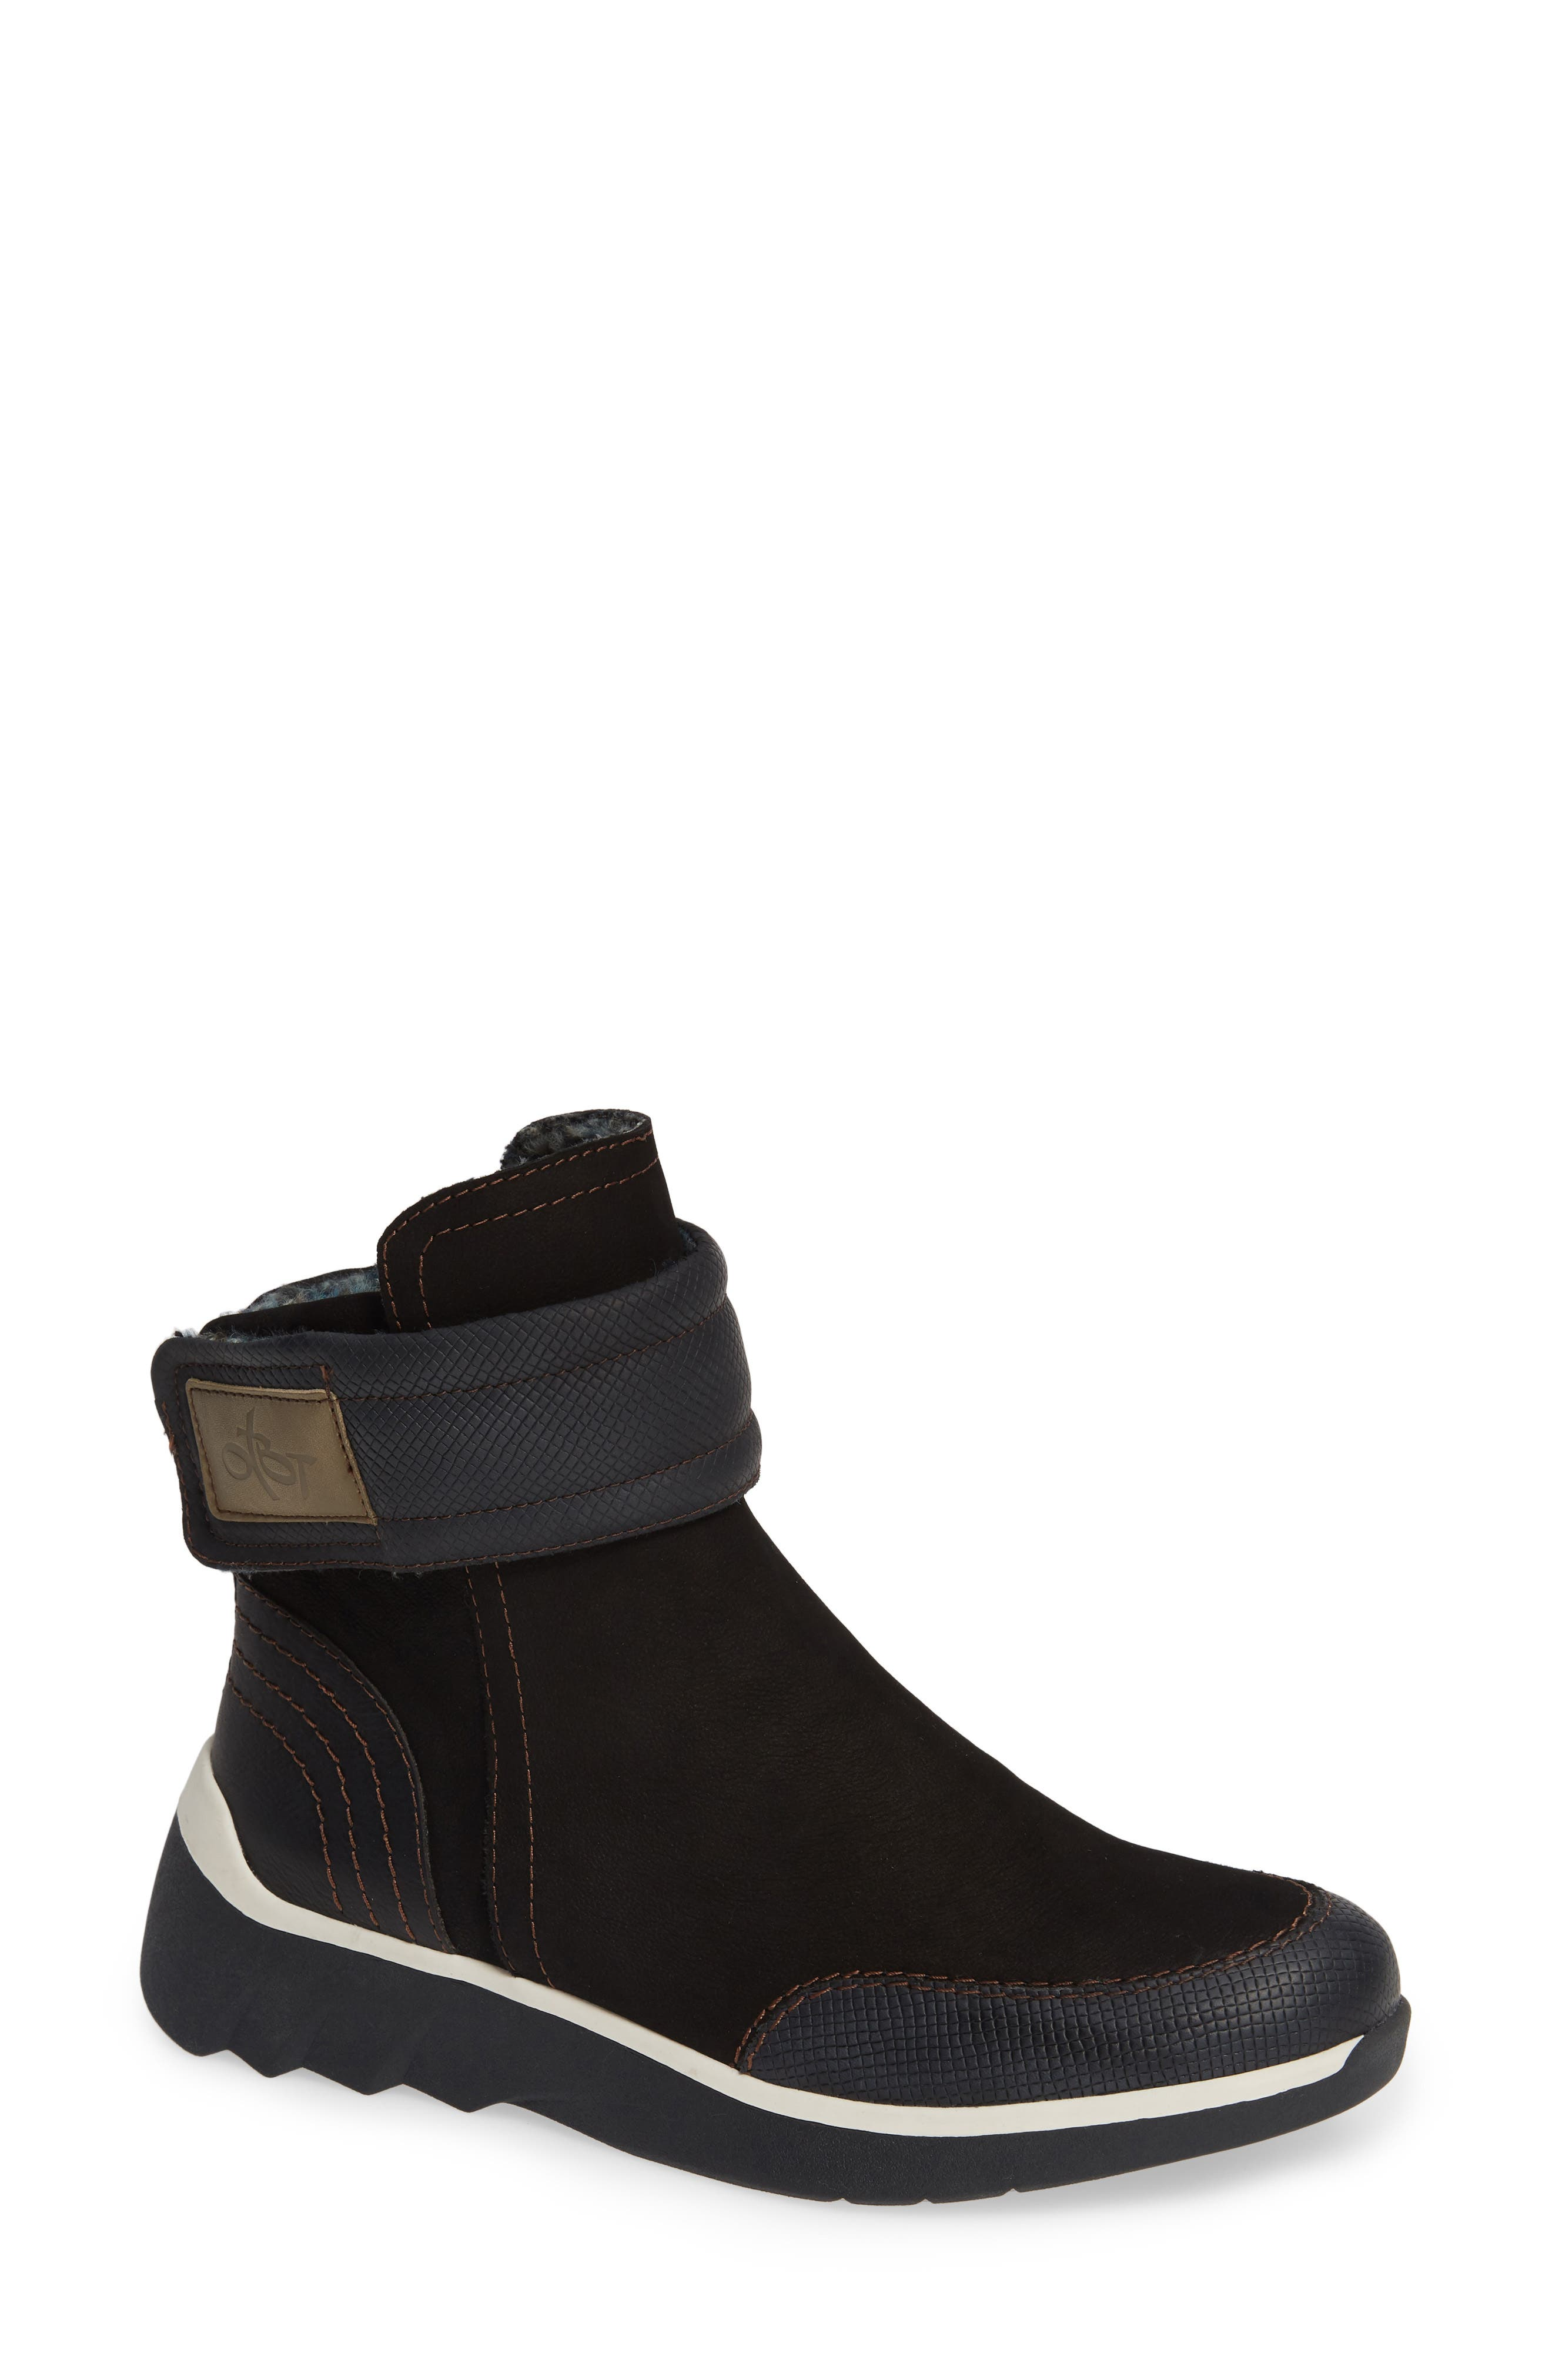 Otbt Outing Bootie- Black